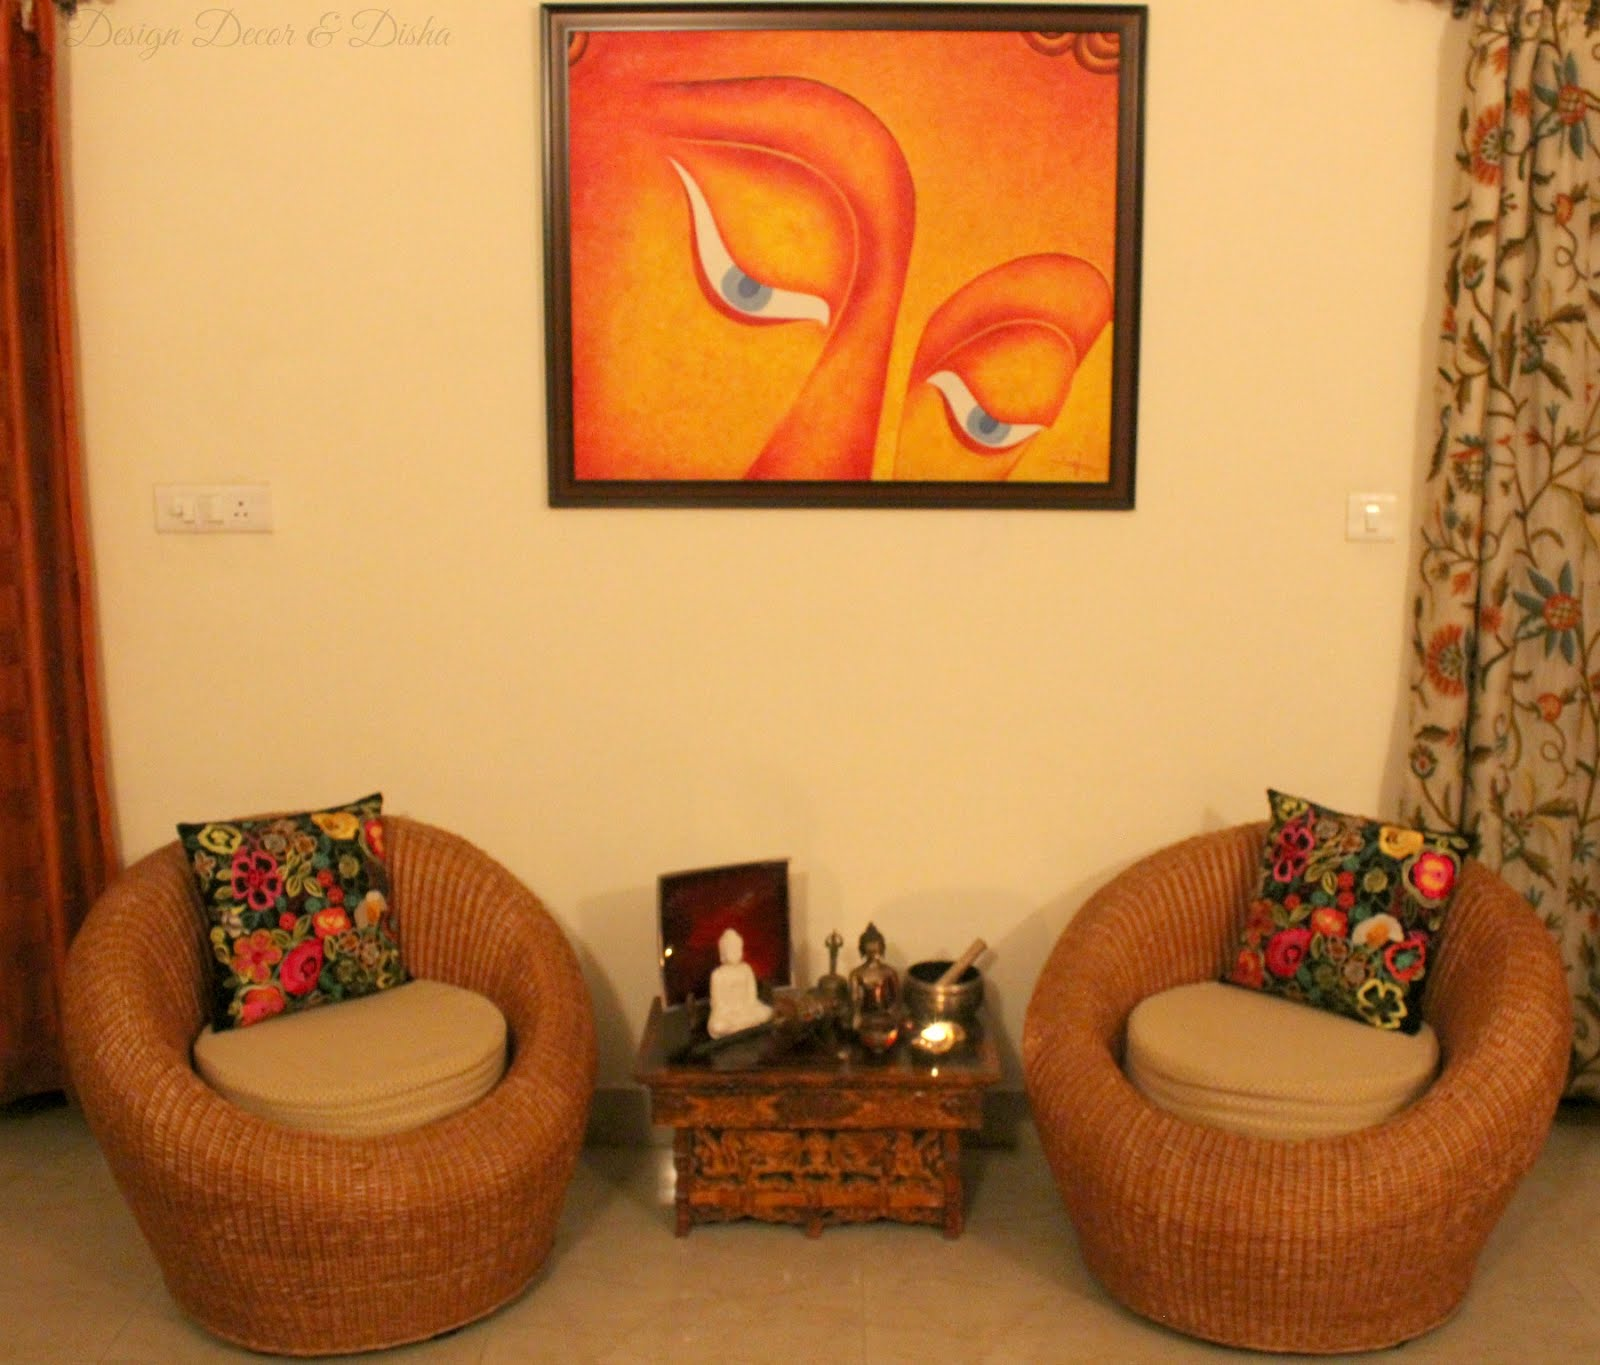 Design decor disha an indian design decor blog home for Home design ideas hindi